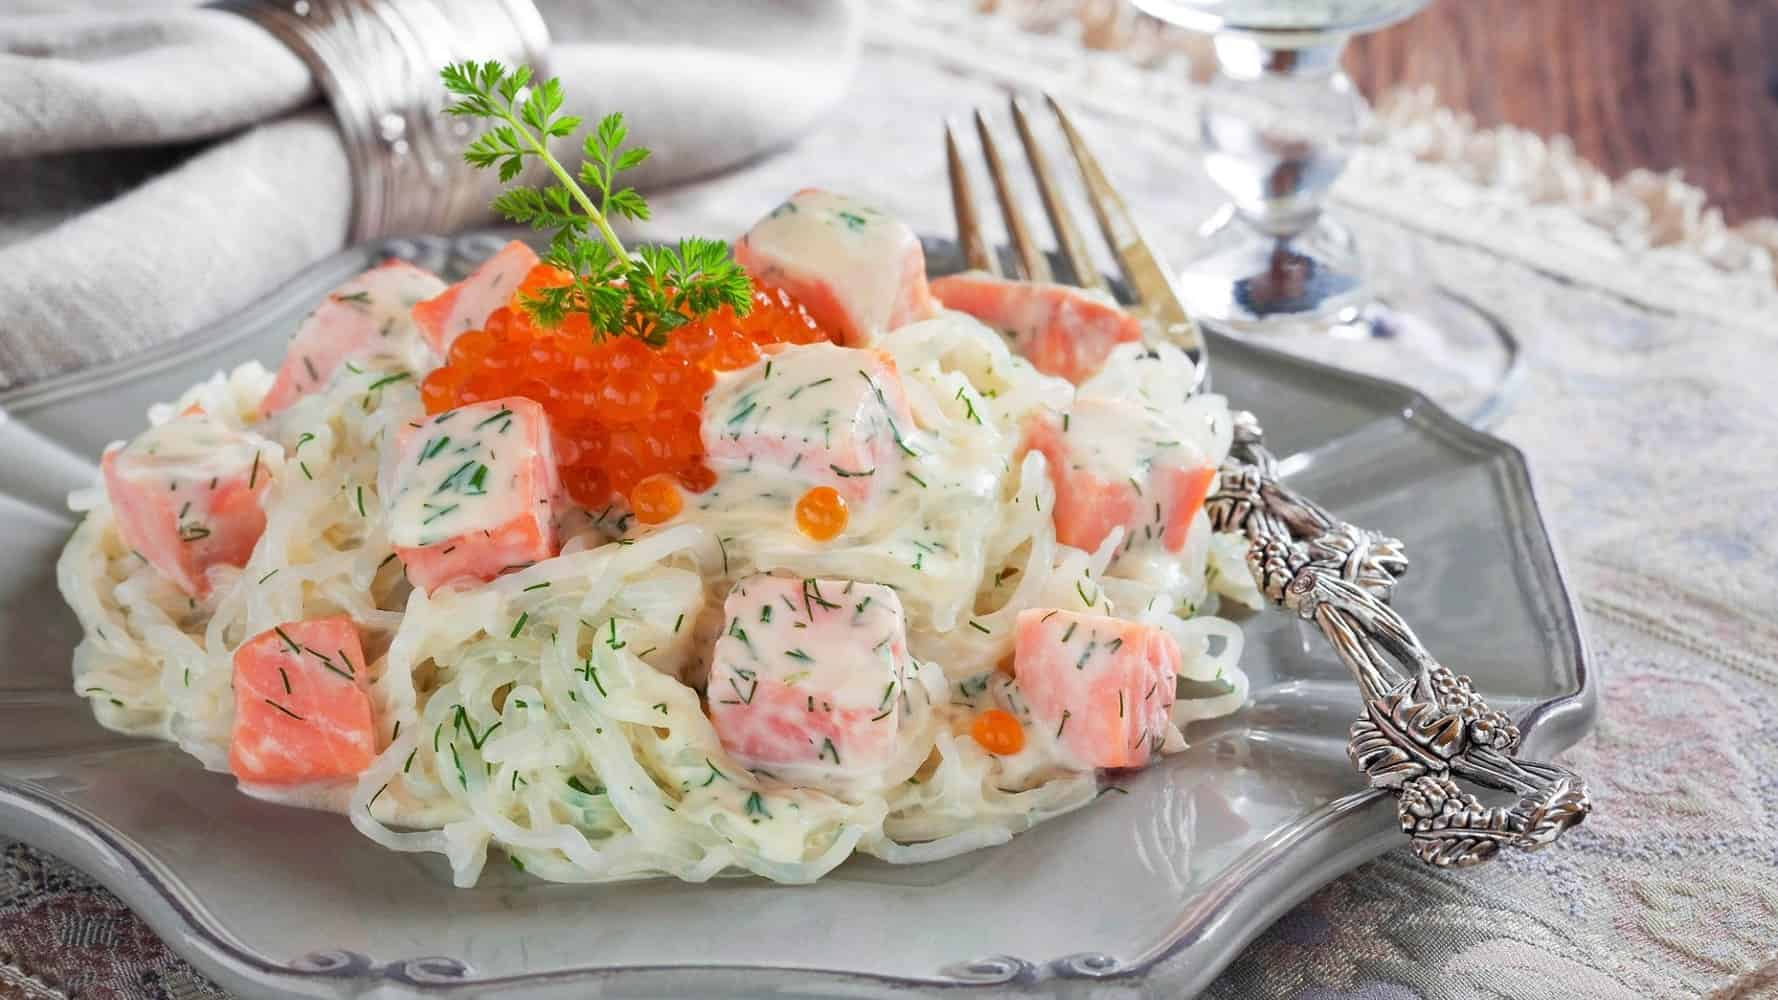 A plate of shirataki noodles with salmon.